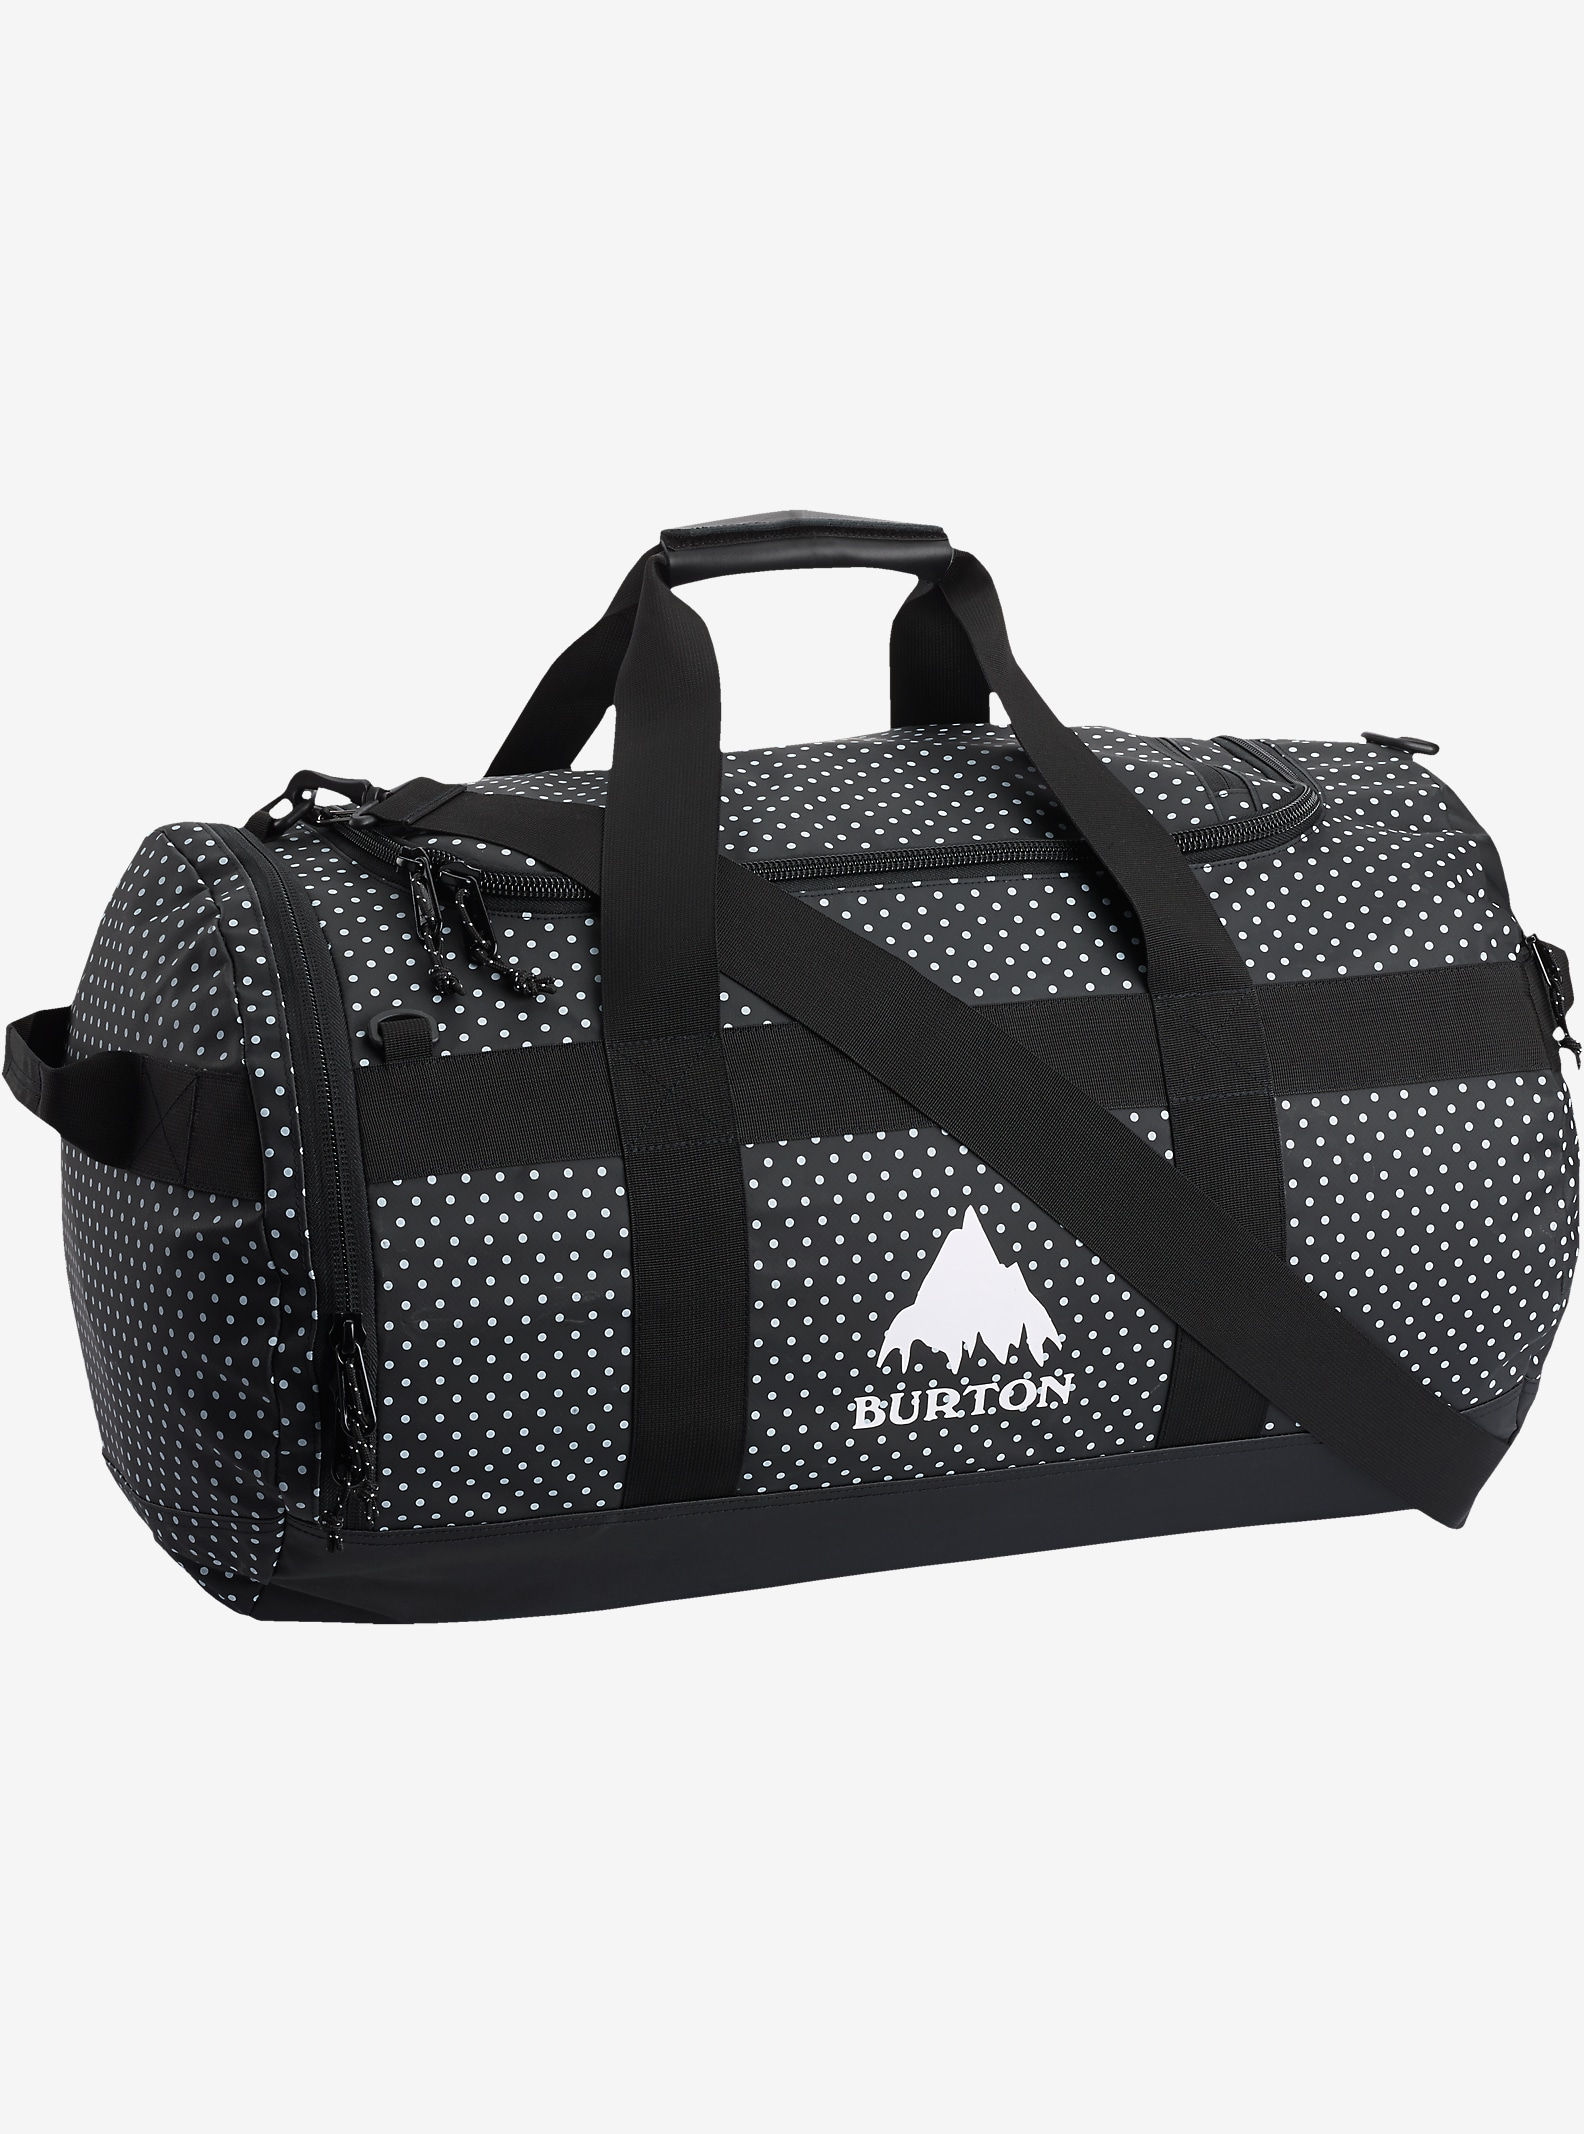 Burton Backhill Duffel Bag Medium 70L shown in Black Polka Dot Tarp